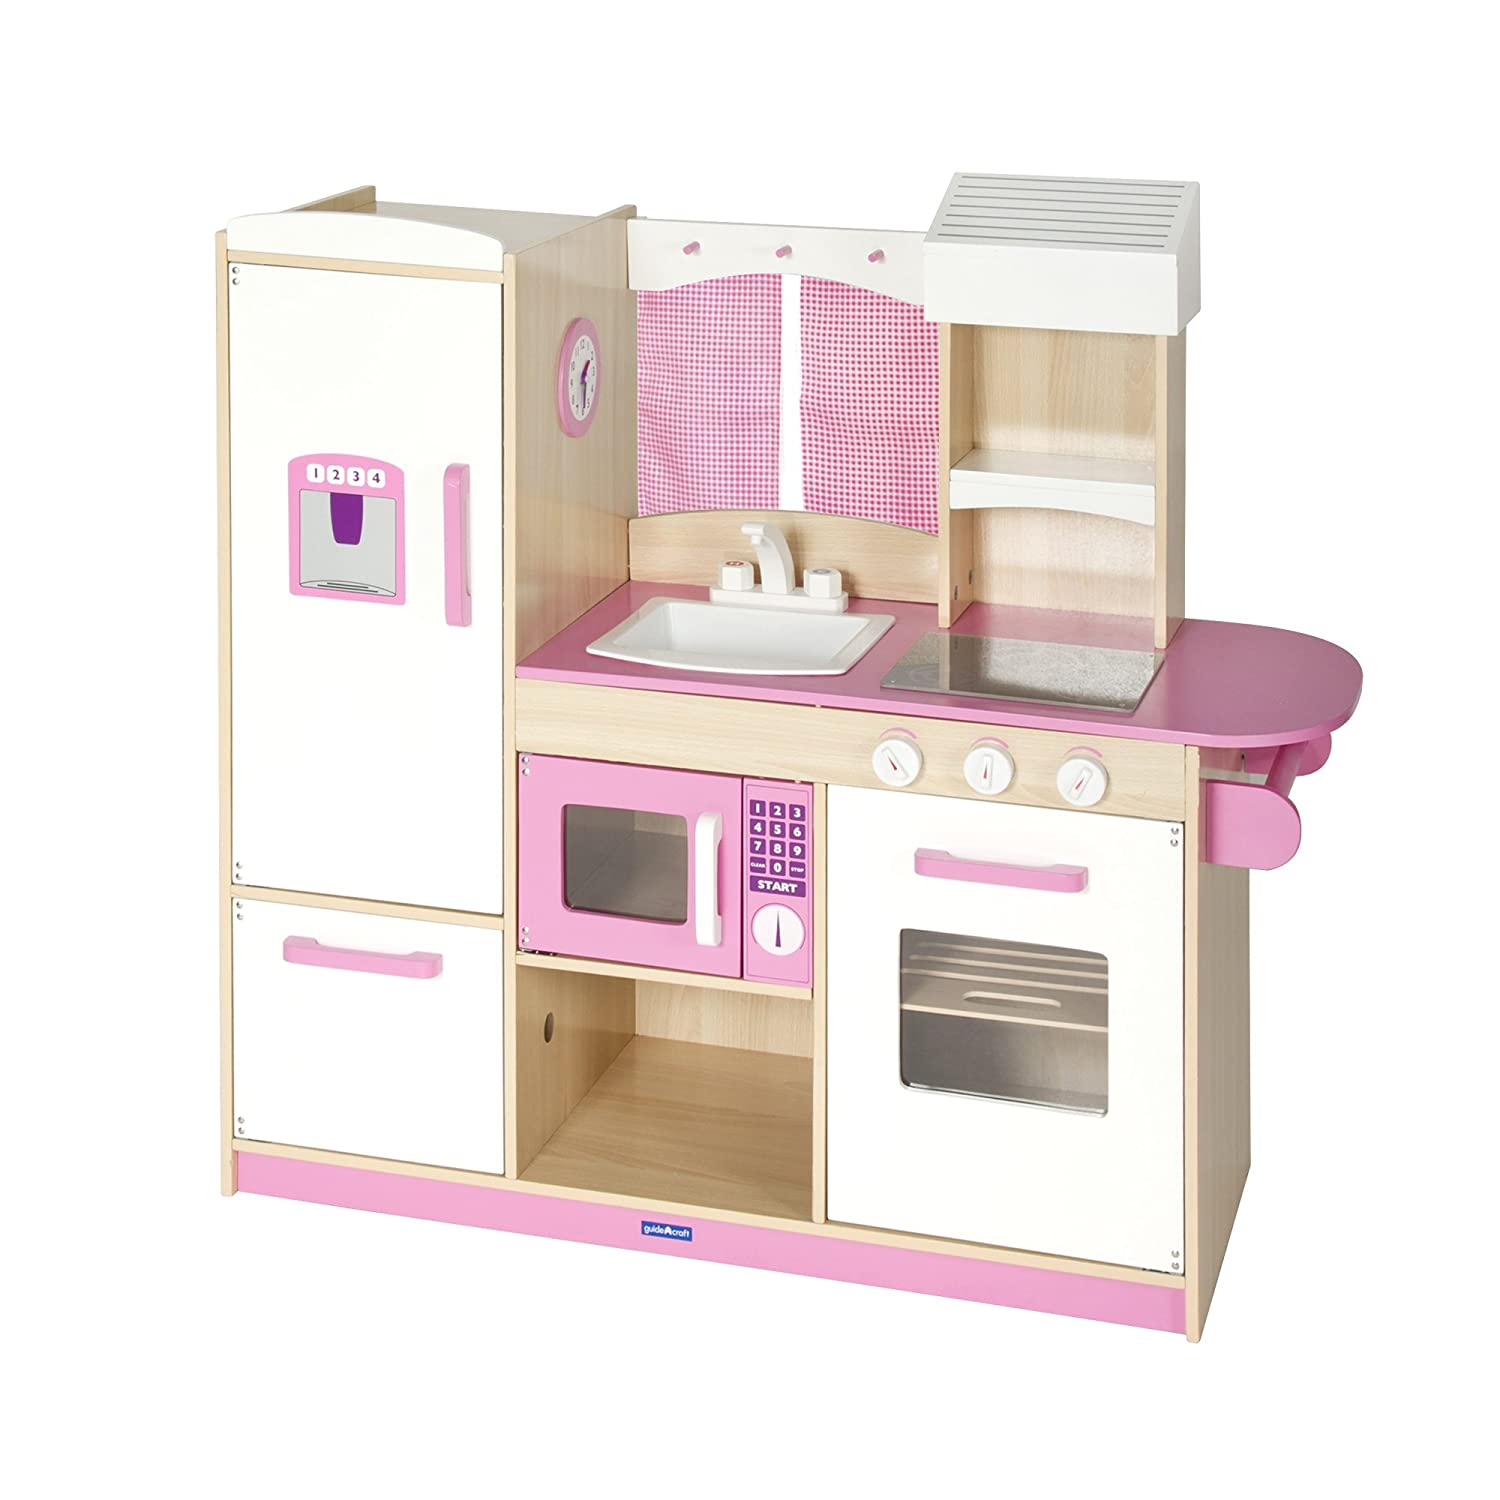 Amazon.com : Guidecraft Play Along Pink Kitchen G97276 : Toy Kitchen Sets :  Baby